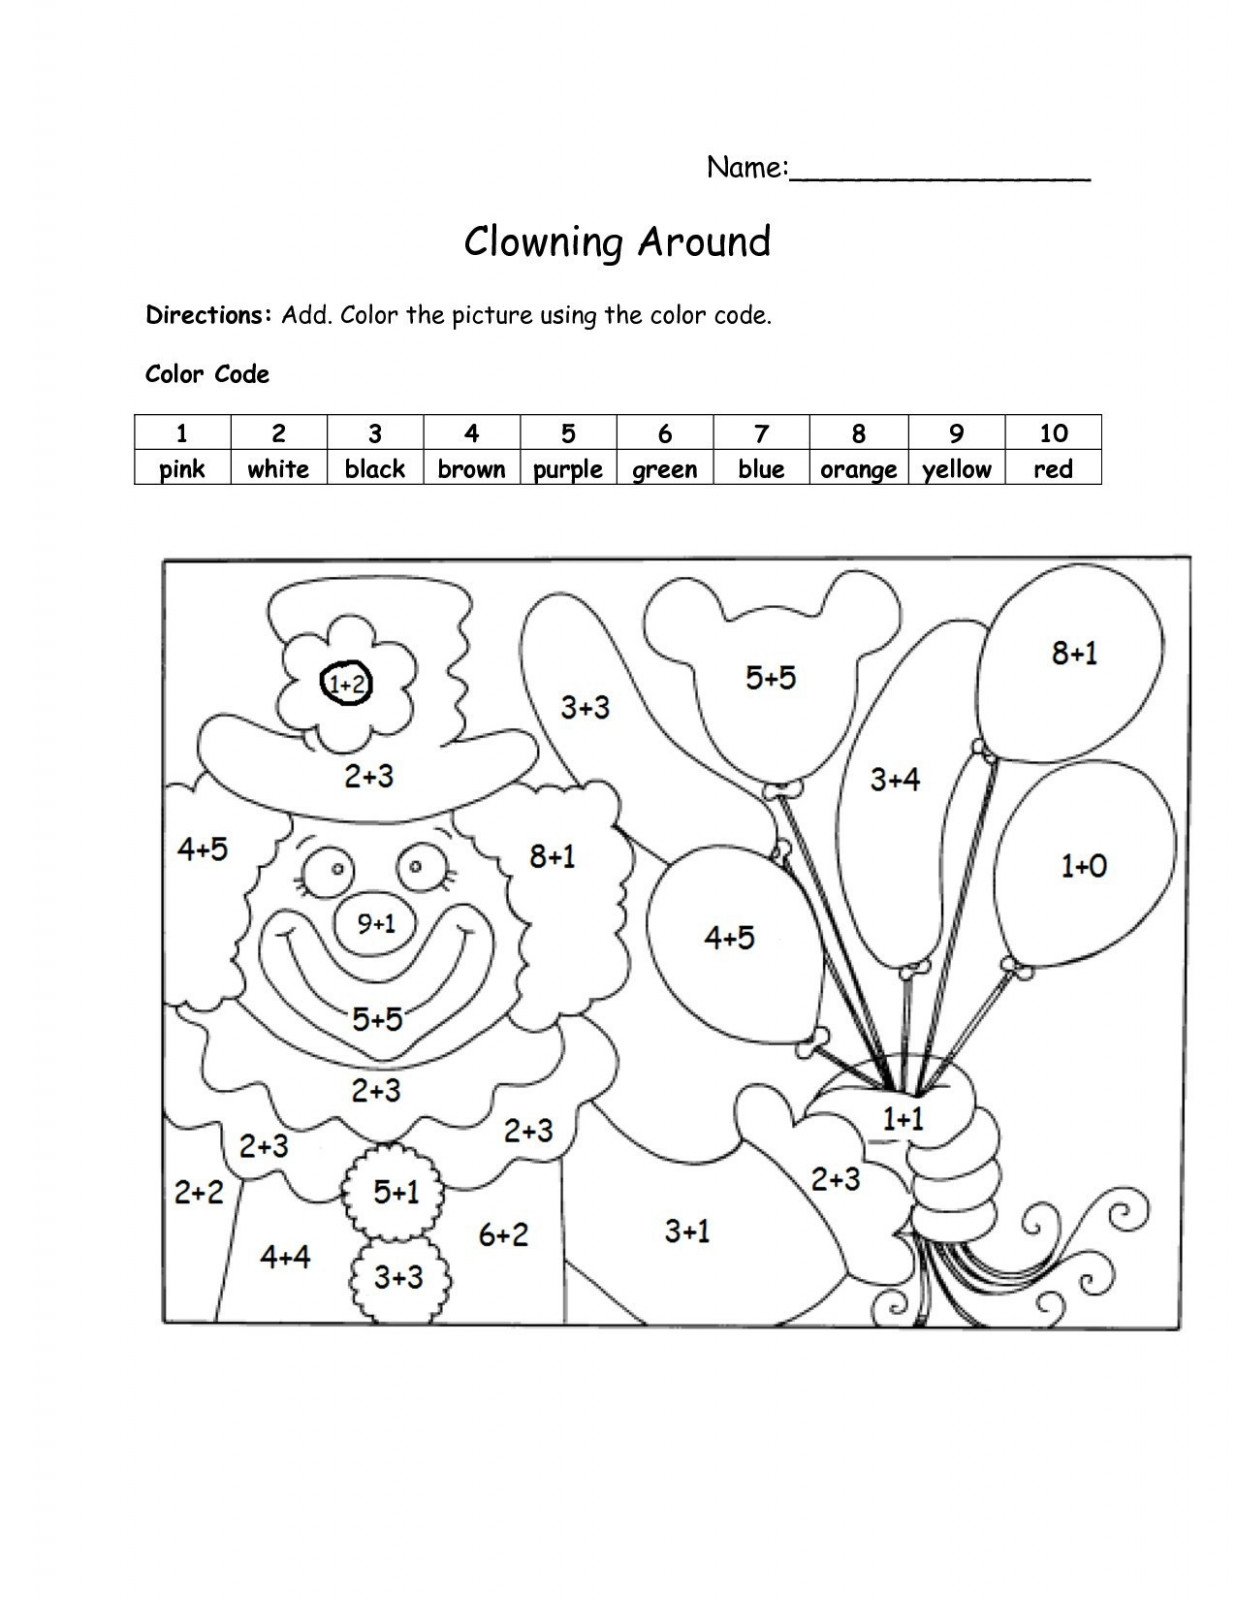 12 Cool Christmas Coloring Sheets For First Grade : Karen Coloring Page – Christmas Coloring Sheets With Math Problems